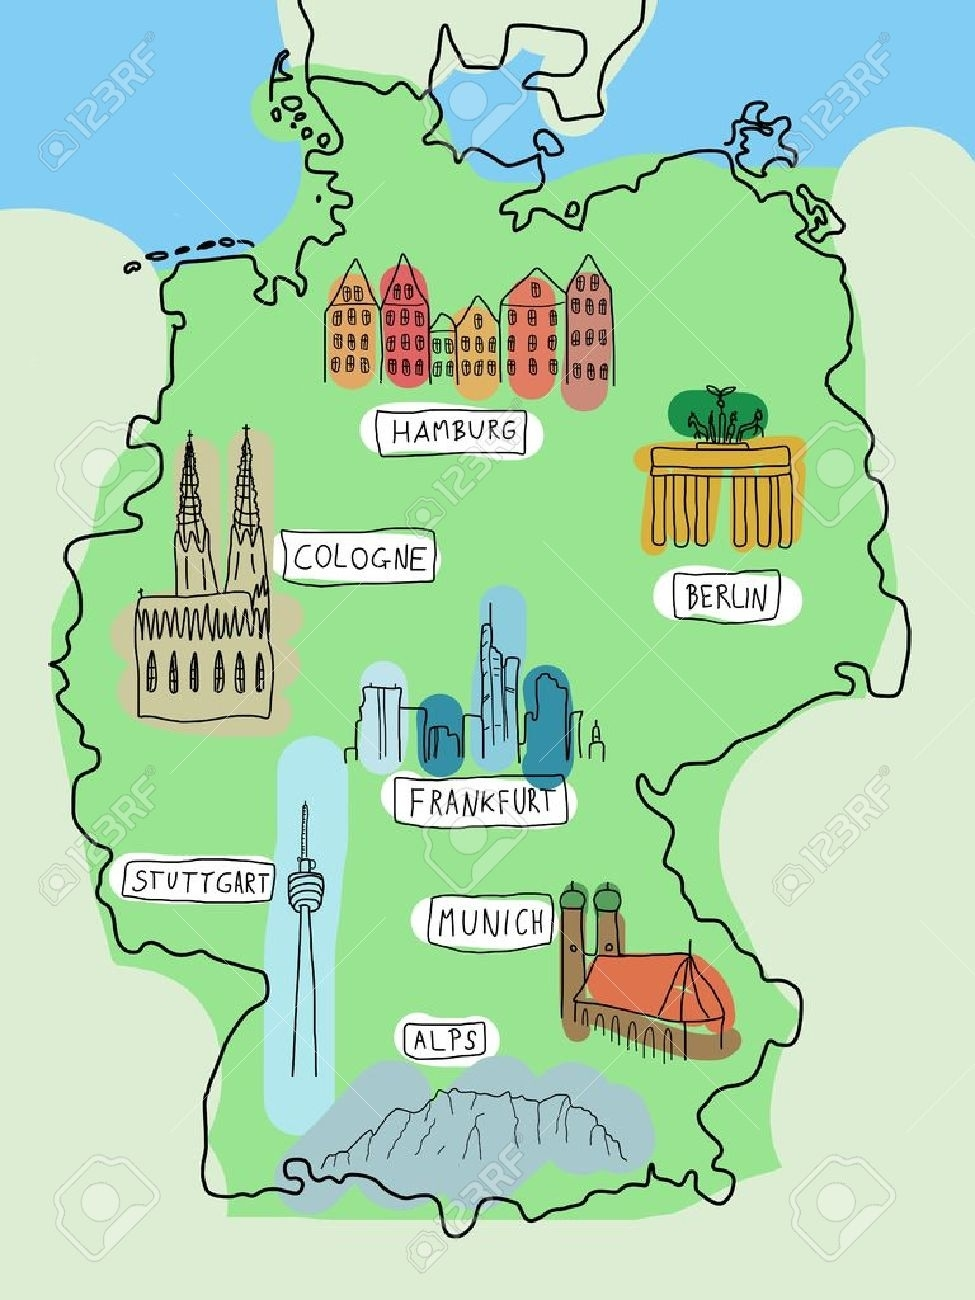 Germany - Doodle Map With Famous Places: Berlin, Hamburg, Cologne,.. in German Alps Map